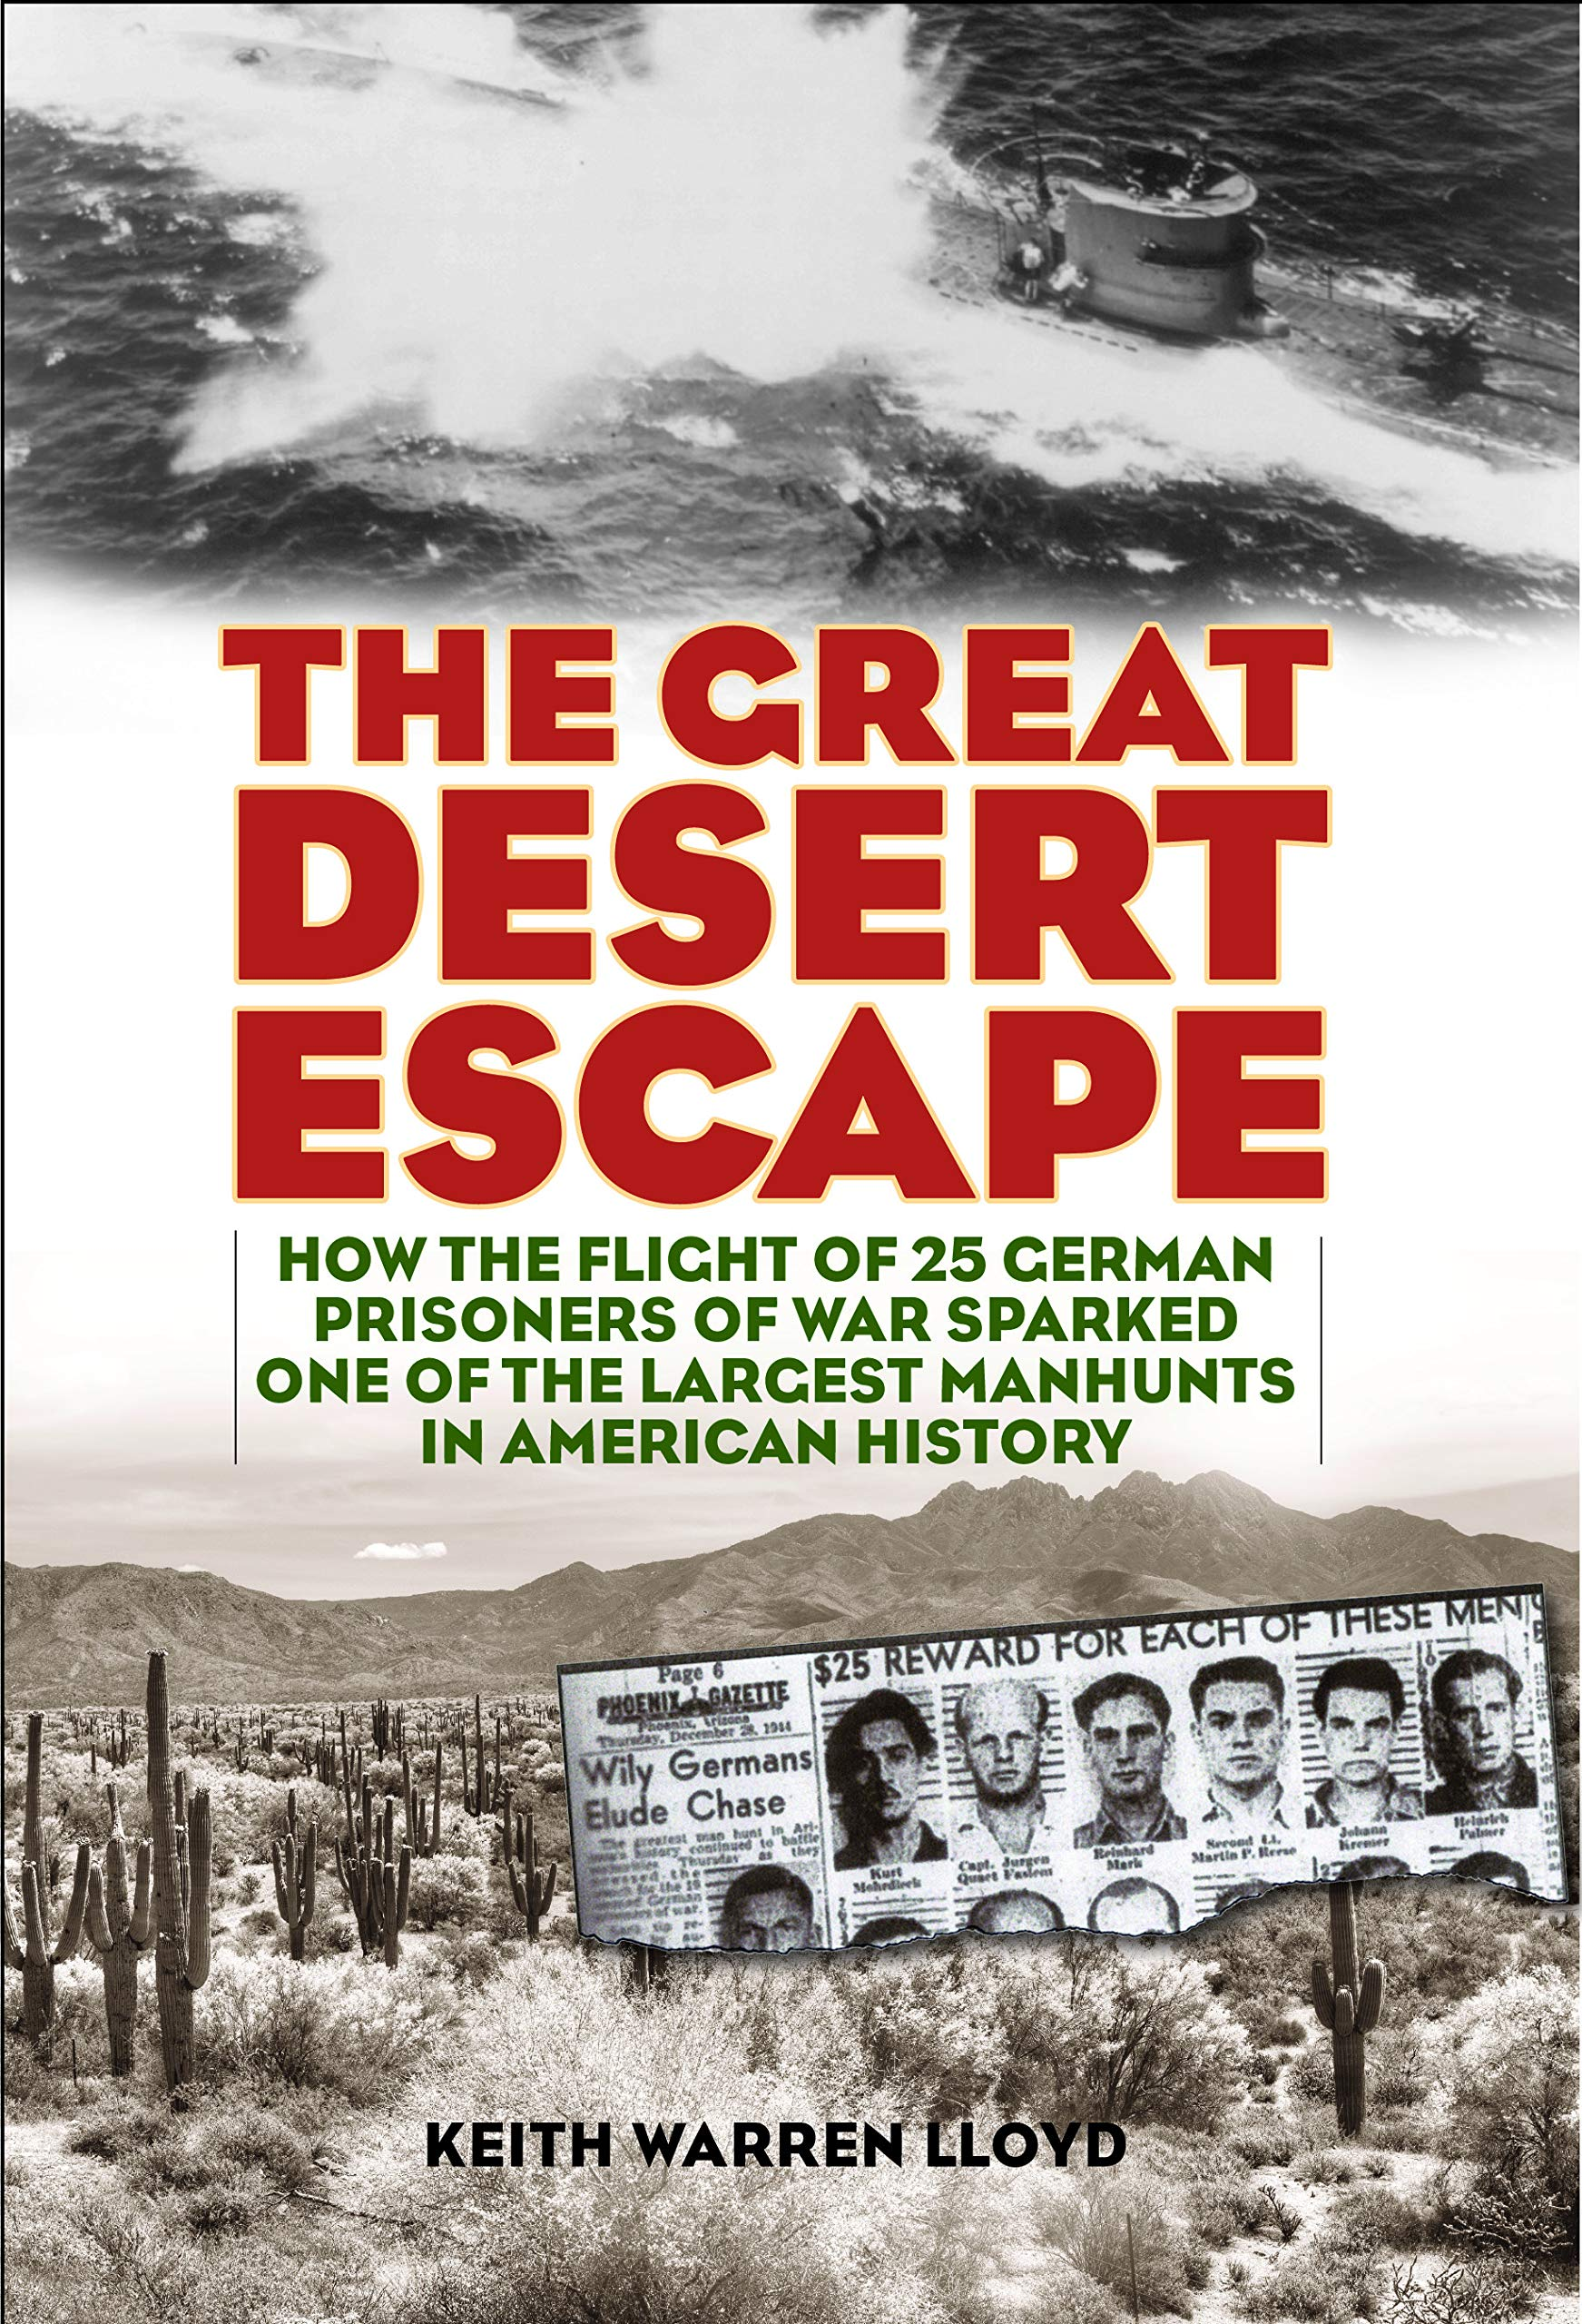 The Great Desert Escape: How the Flight of 25 German Prisoners of War Sparked One of the Largest Manhunts in American History by Lyons Press